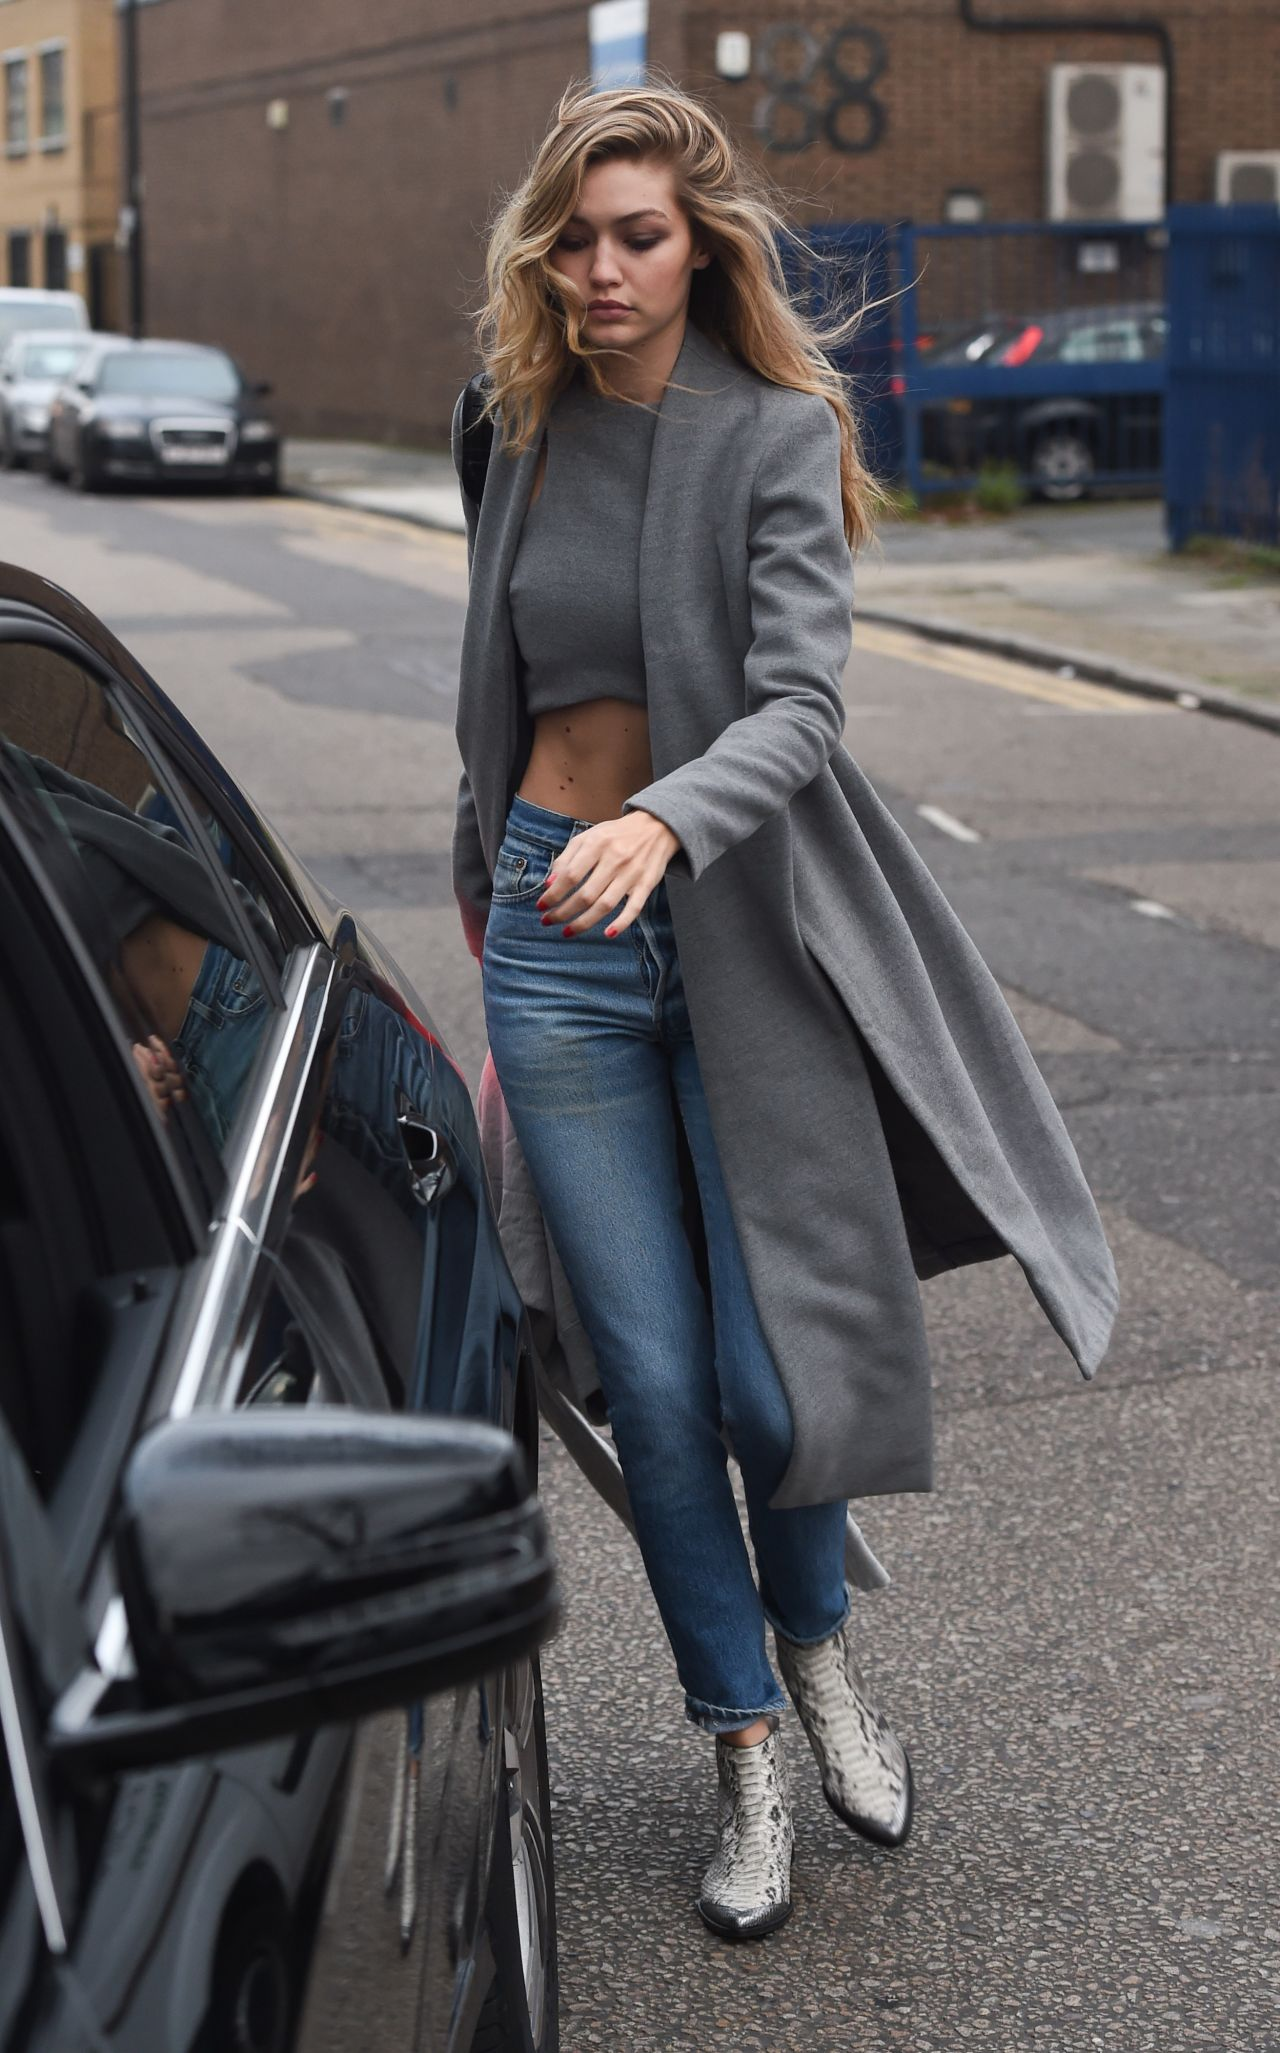 Gigi Hadid Casual Style Leaving Photo Studios In London